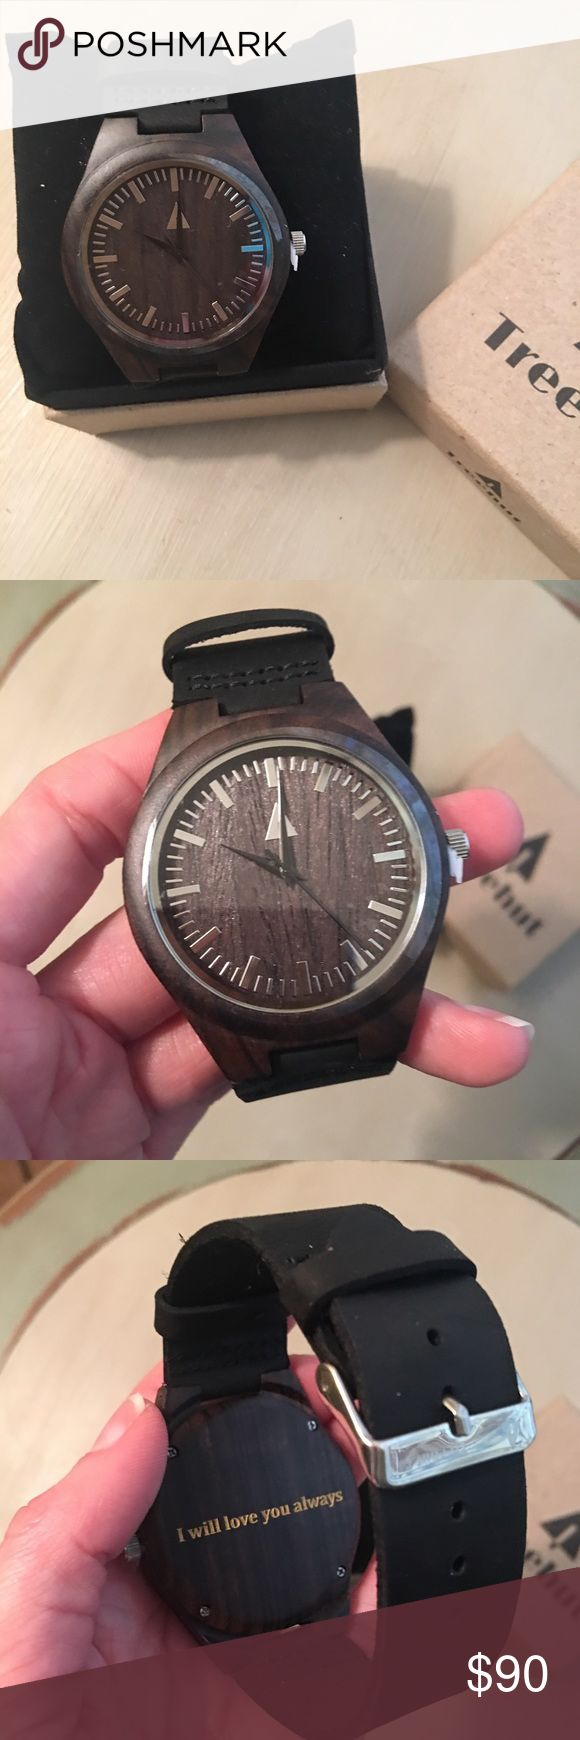 New Tree Hut men's watch. Brand new. Men's watch. Dark brown wooden face with a black band. This watch is super lightweight. I did have it engraved. Just never ended up giving it to the intended person, obviously. Lol Tree Hut Accessories Watches